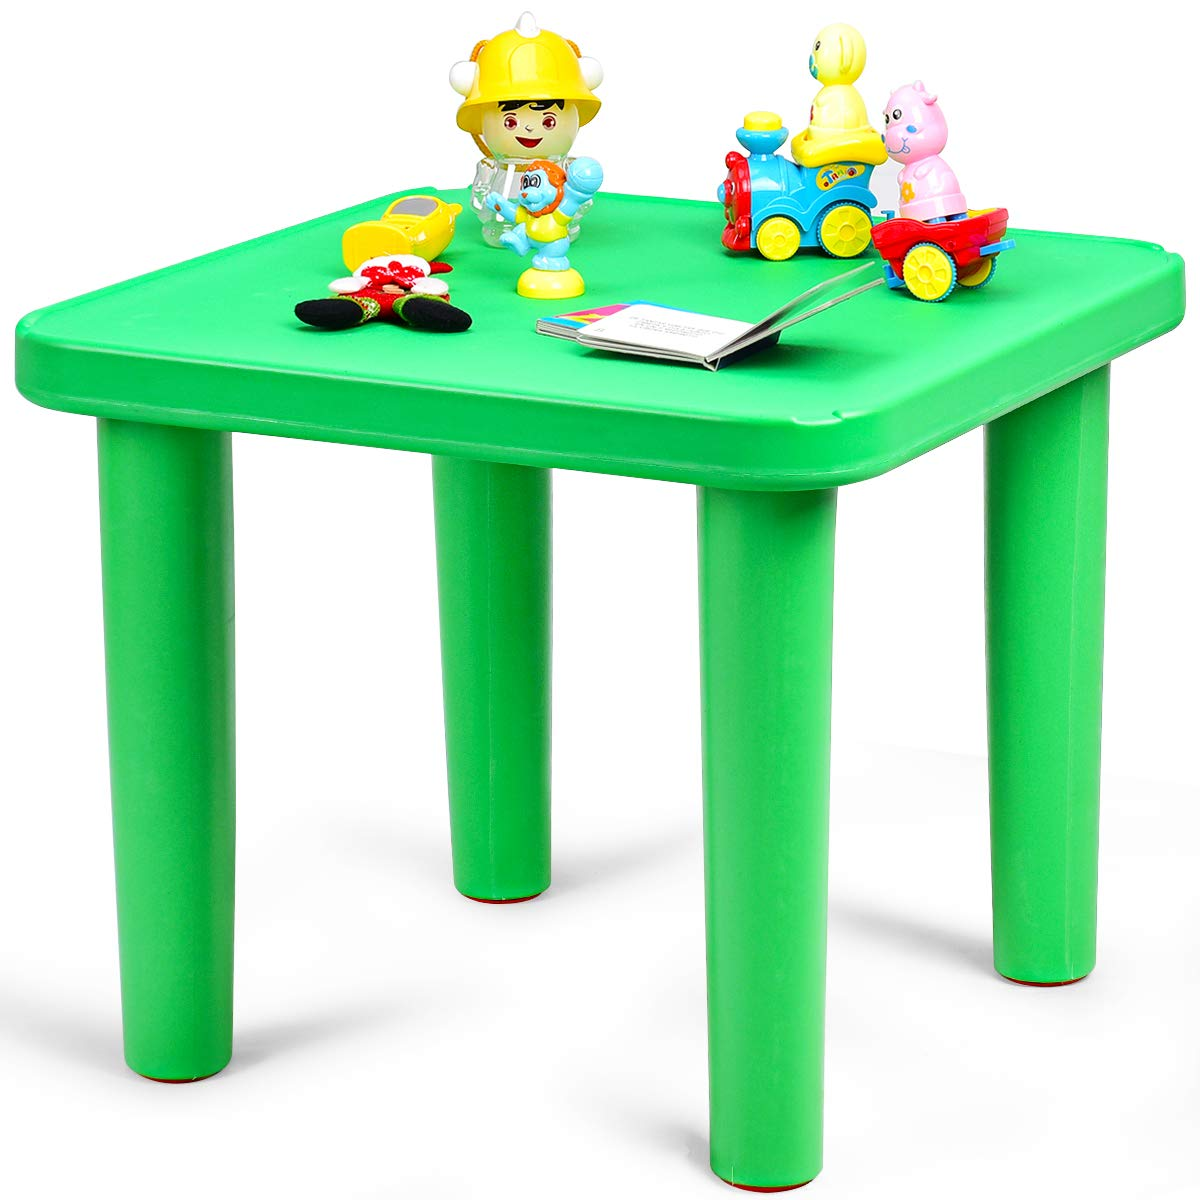 Costzon Kids Plastic Table, Chair Learn and Play Activity Set, School Home Furniture (Table)